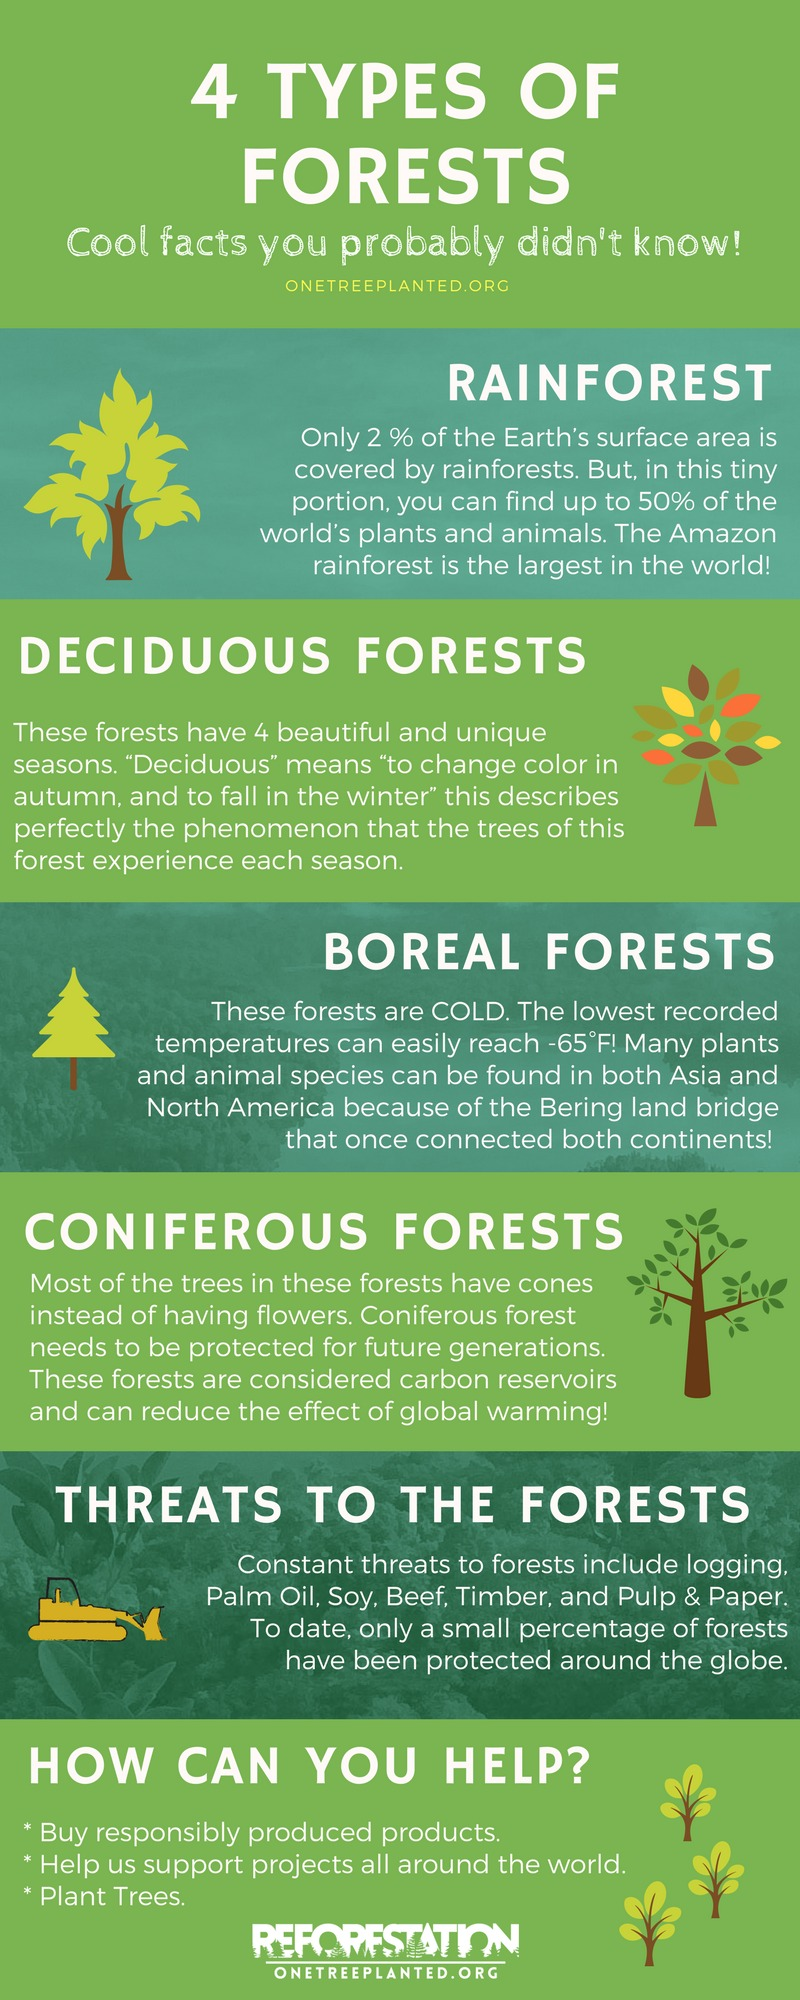 Types Of Wine Bottles Infographic: Pine Tree In Barcelona TransPerfect